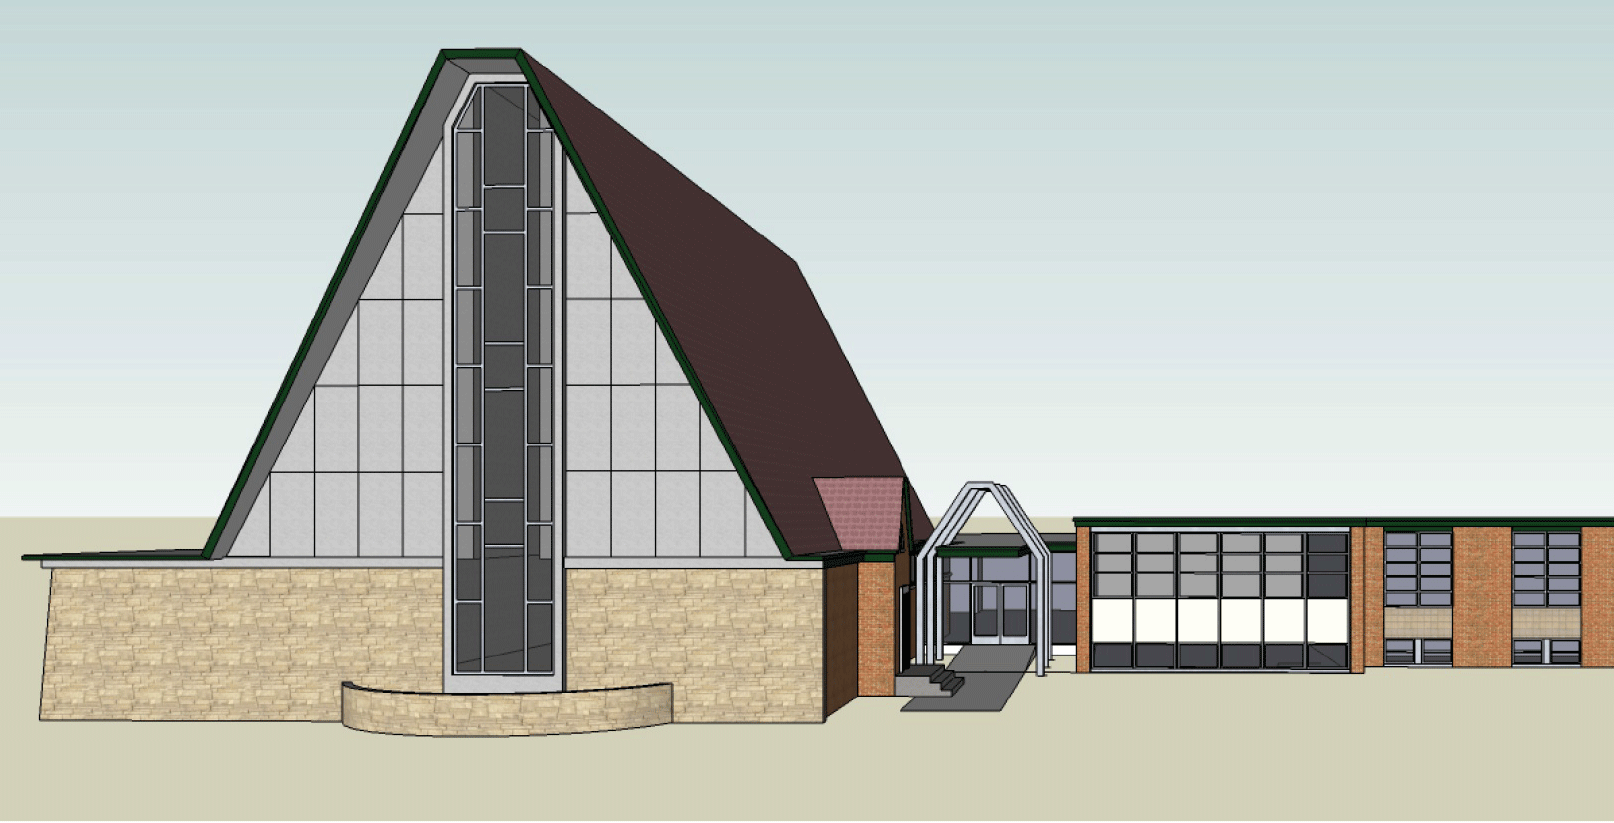 Phase Four: Building Exterior